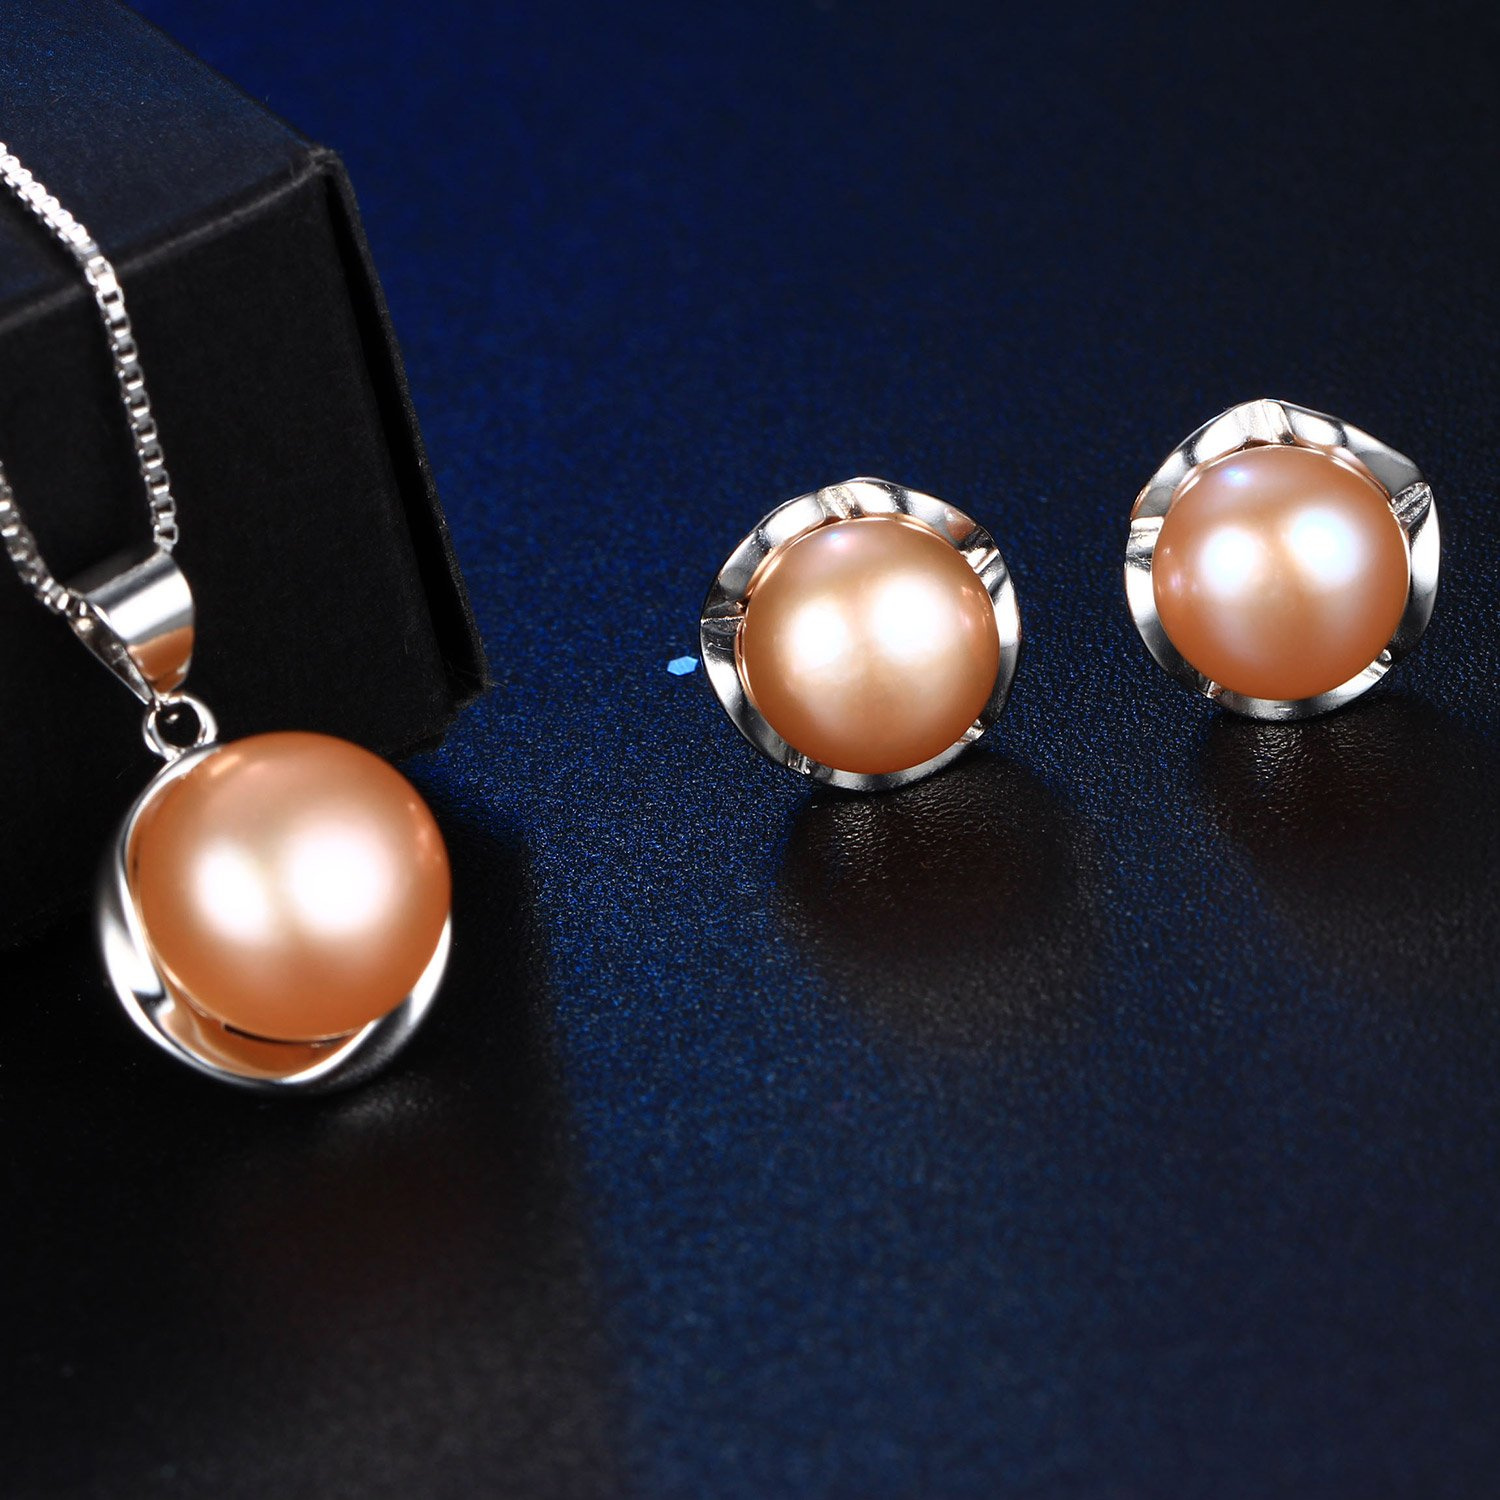 2d64e5329 Amazon.com: HENGSHENG Natural Pearl Jewelry Set For Women 925 Sterling  Silver Pendant Necklace and Earring Set 10-11mm Pearl(cpset014): Jewelry